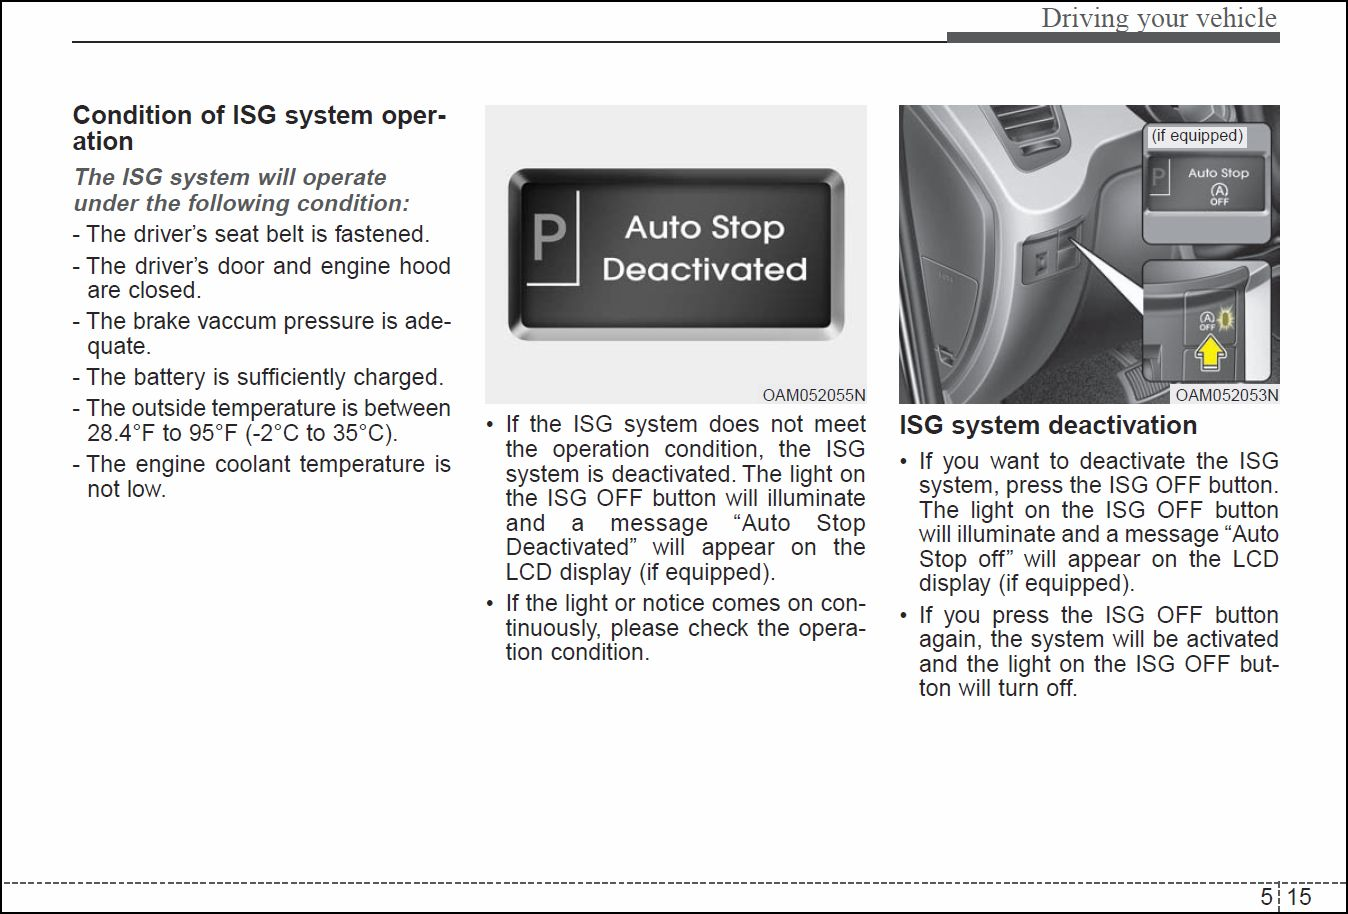 Hyundai Elantra: Operation Condition for the ISG function